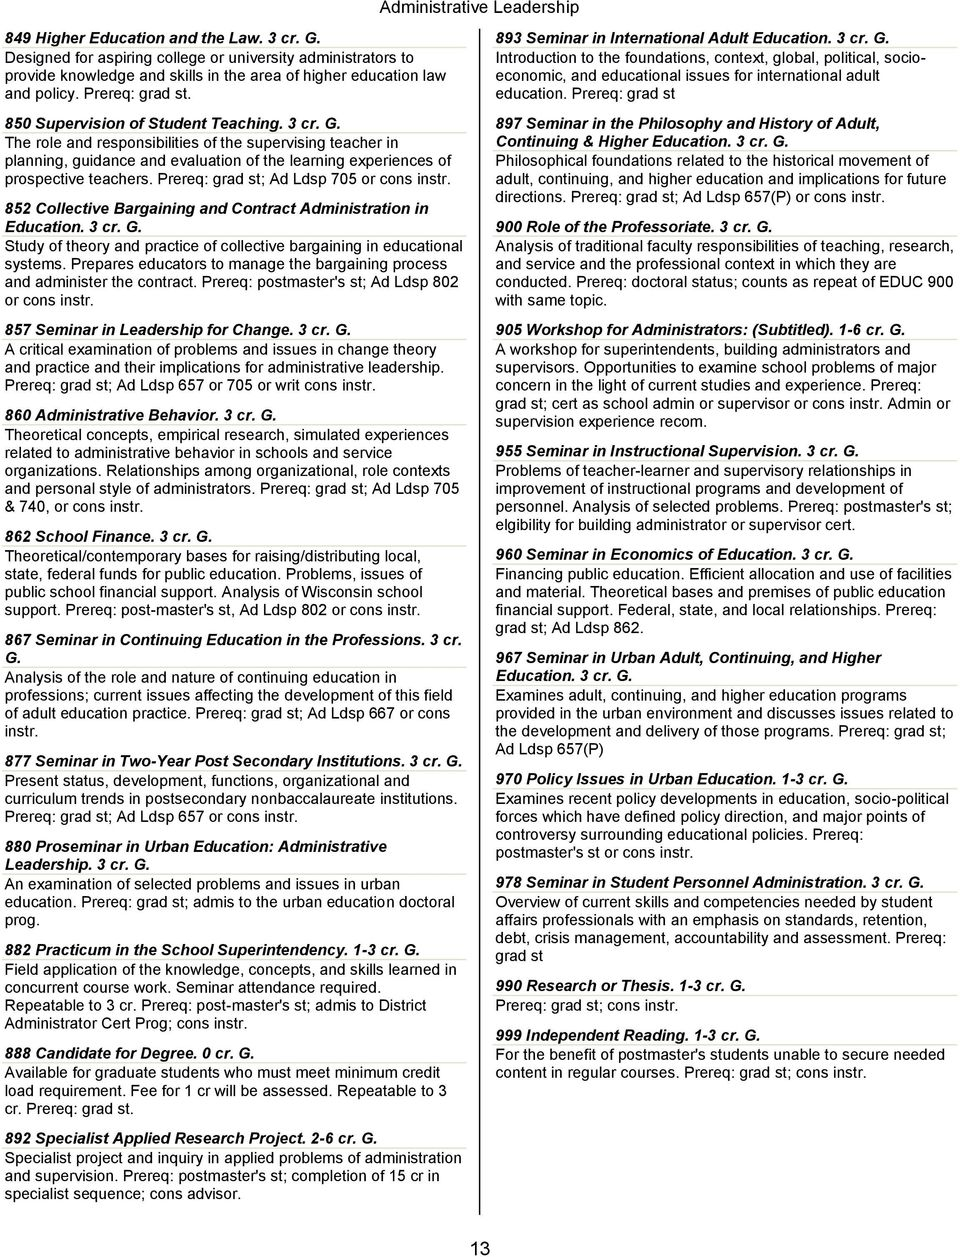 G. The role and responsibilities of the supervising teacher in planning, guidance and evaluation of the learning experiences of prospective teachers. Prereq: grad st; Ad Ldsp 705 or cons instr.